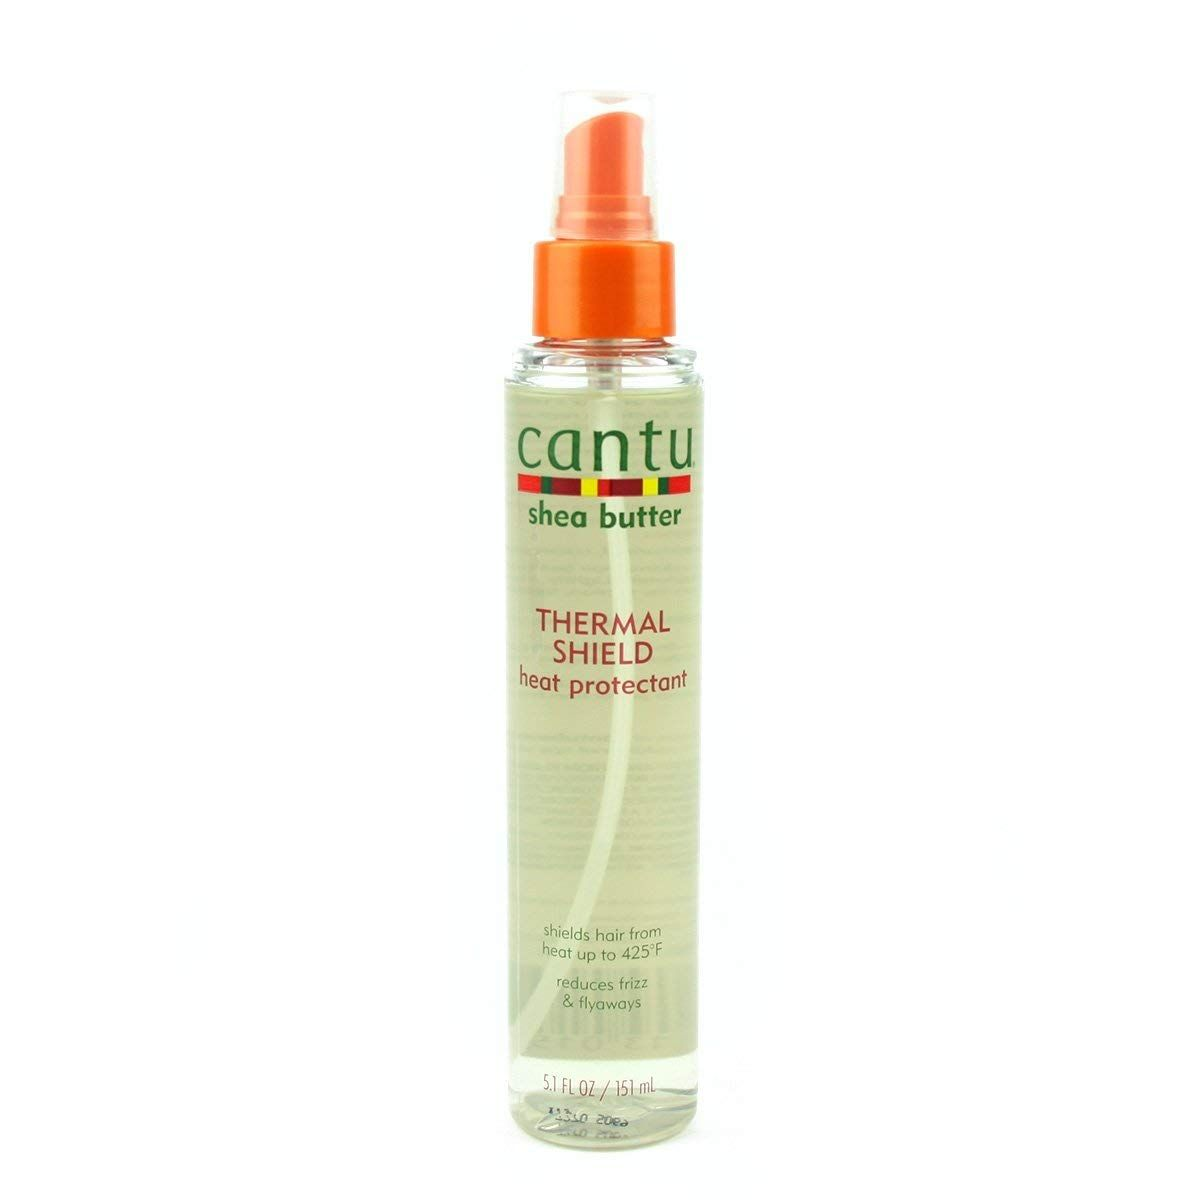 Cantu Shea Butter Thermal Shield Heat Protectant - 151ml